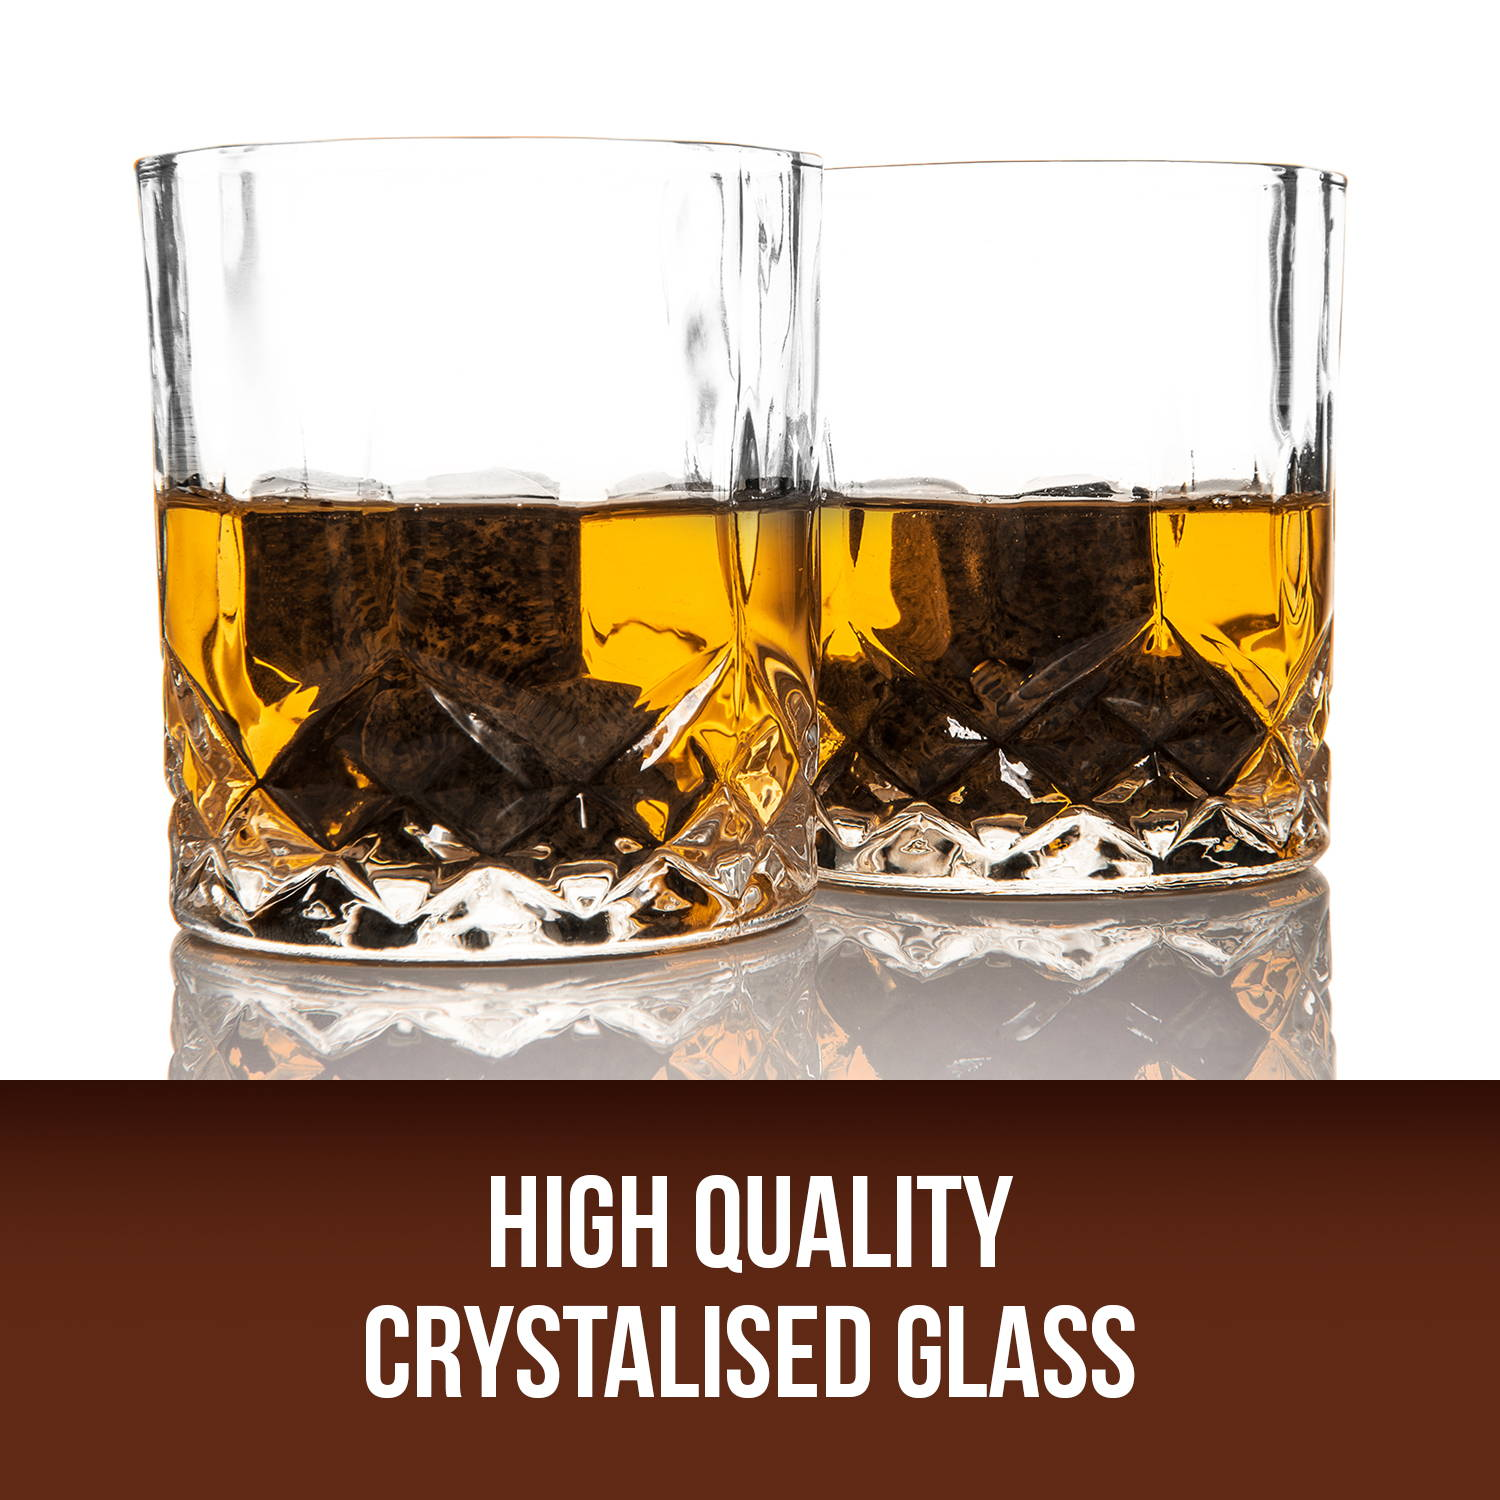 High-quality Crystalised Glass